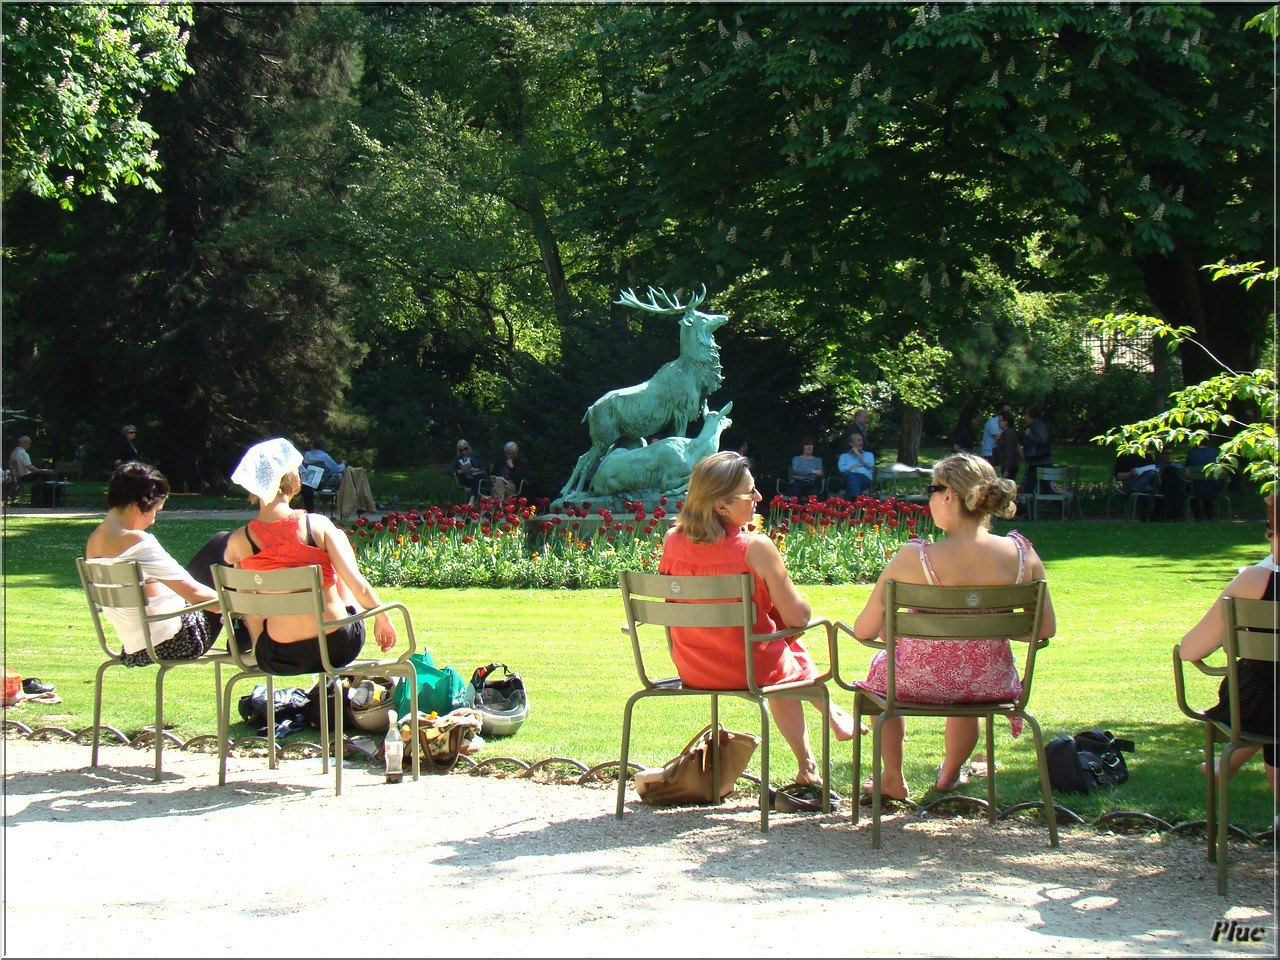 Chaise jardin du luxembourg images - Chaise jardin du luxembourg ...